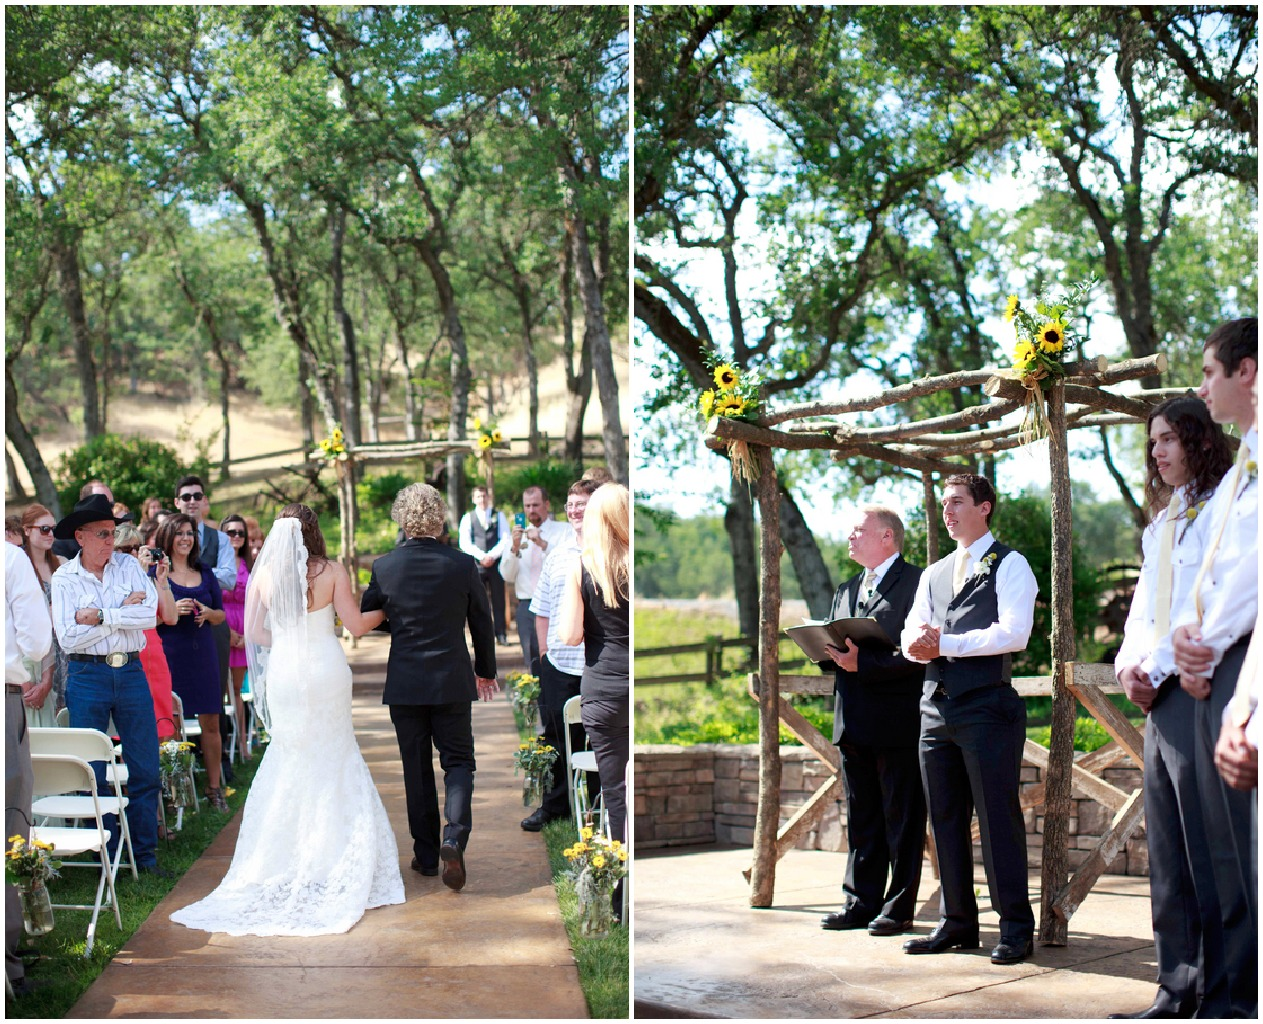 Rustic Barn Wedding - Rustic Wedding Chic - photo#14